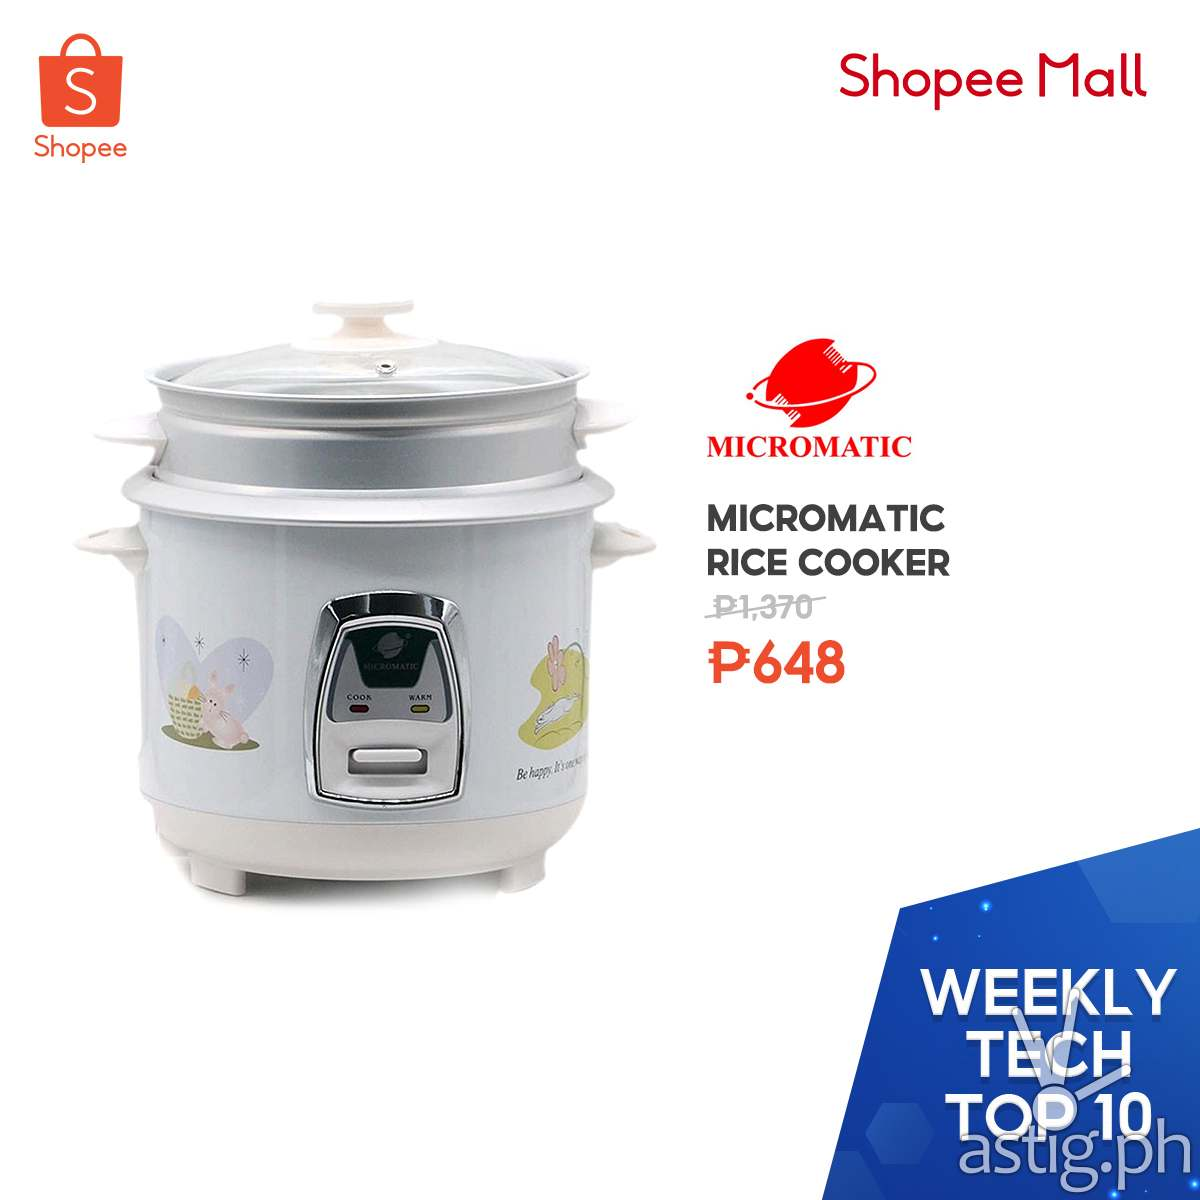 Micromatic Rice Cooker